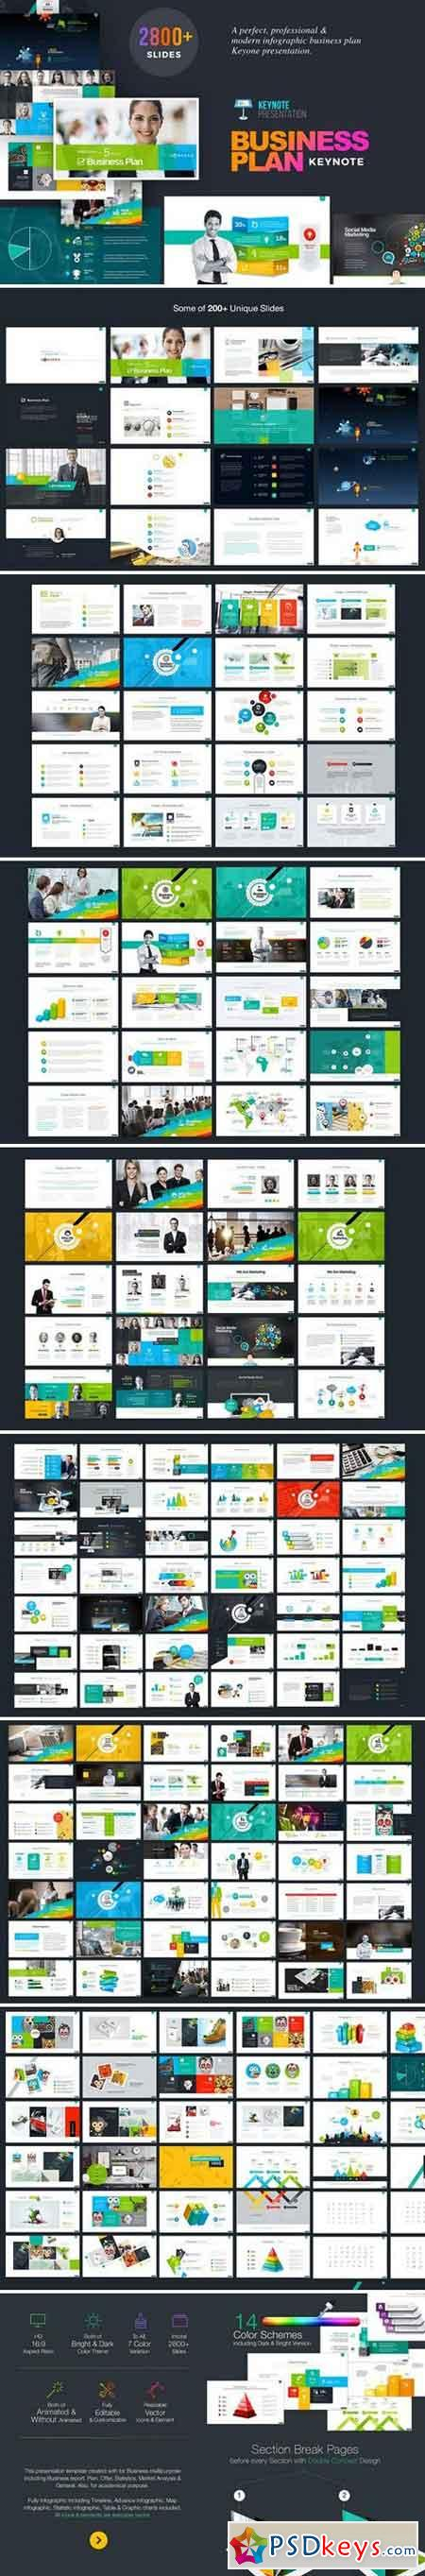 Business Plan Presentation 2377847